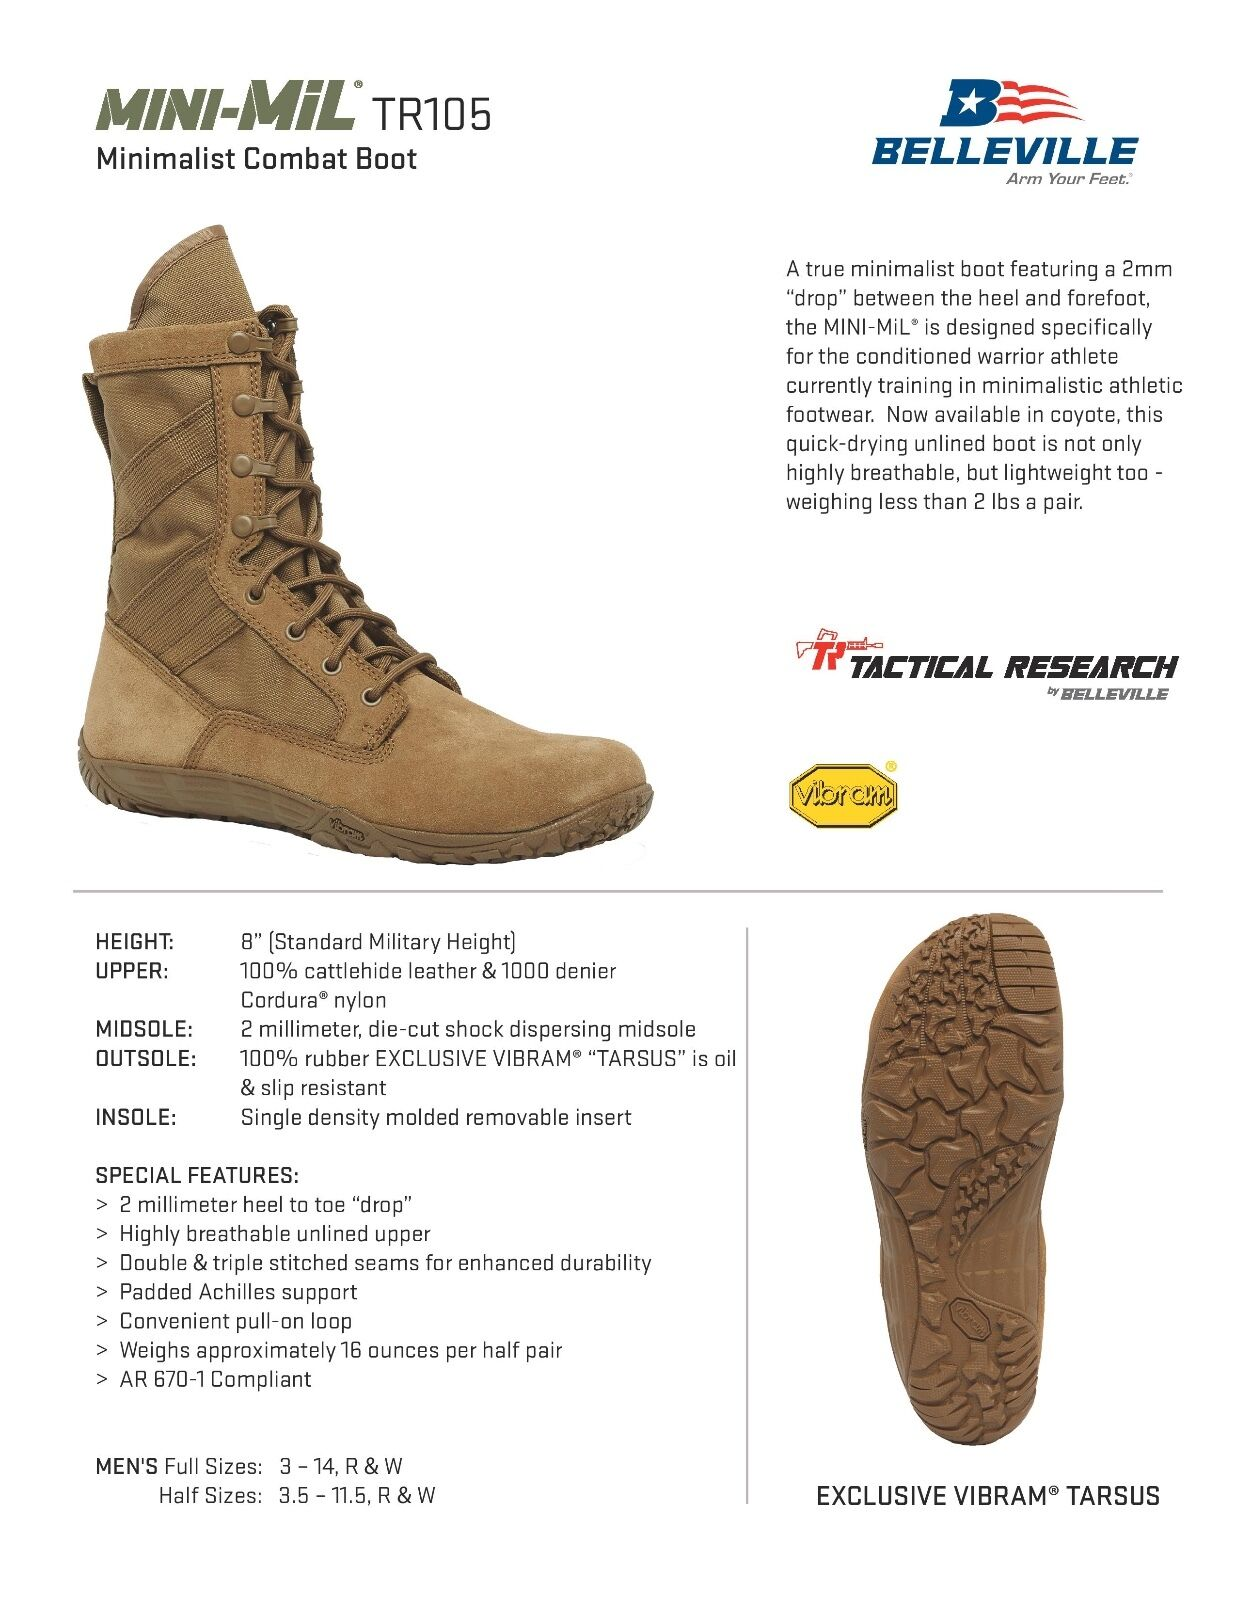 BELLEVILLE TR105 TACTICAL RESEARCH MINIMALIST COMBAT BOOTS * ALL ALL * SIZES - NEW 67b972